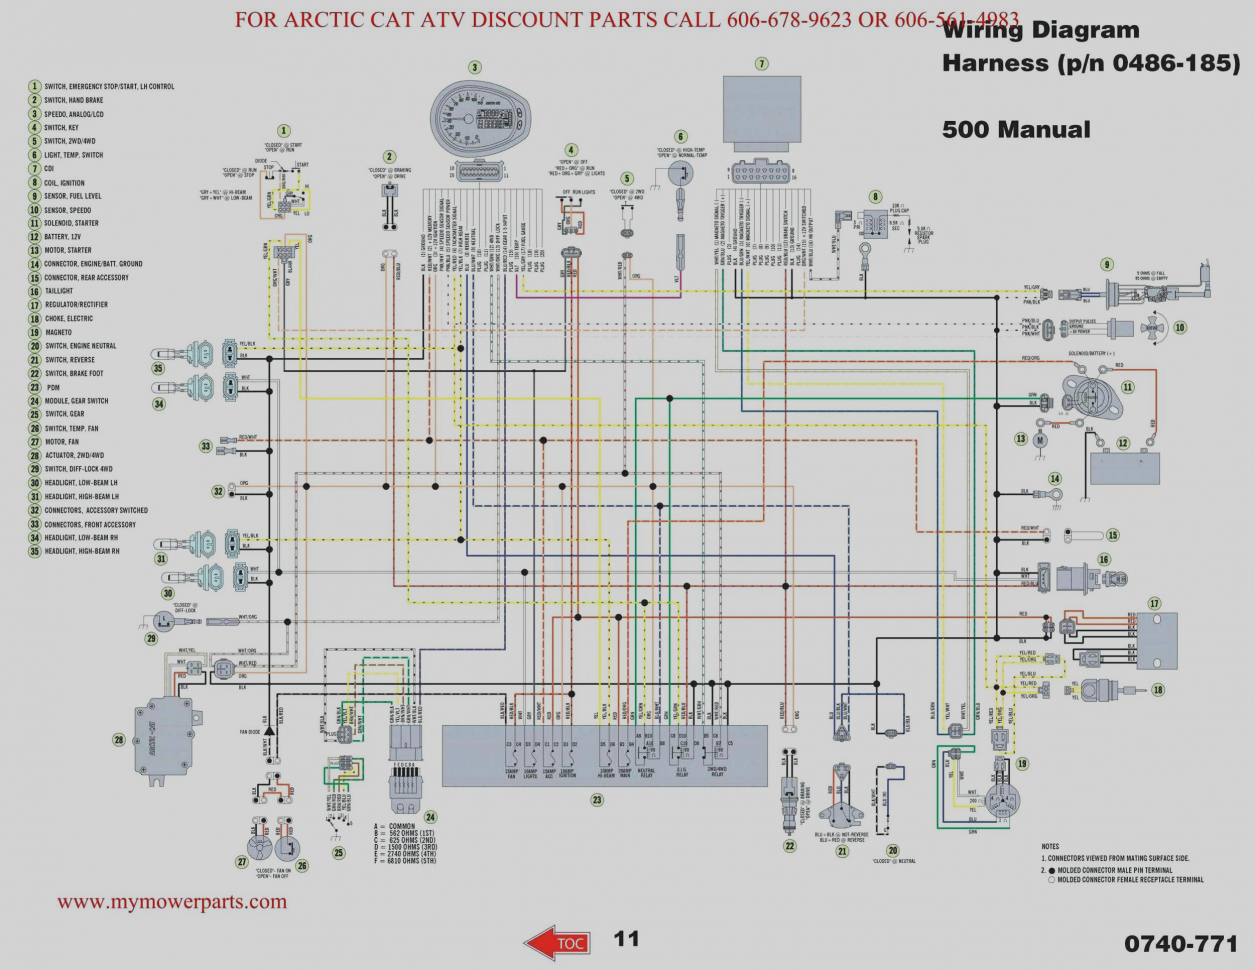 2010 Polaris Ranger 800 Crew Wiring Diagram